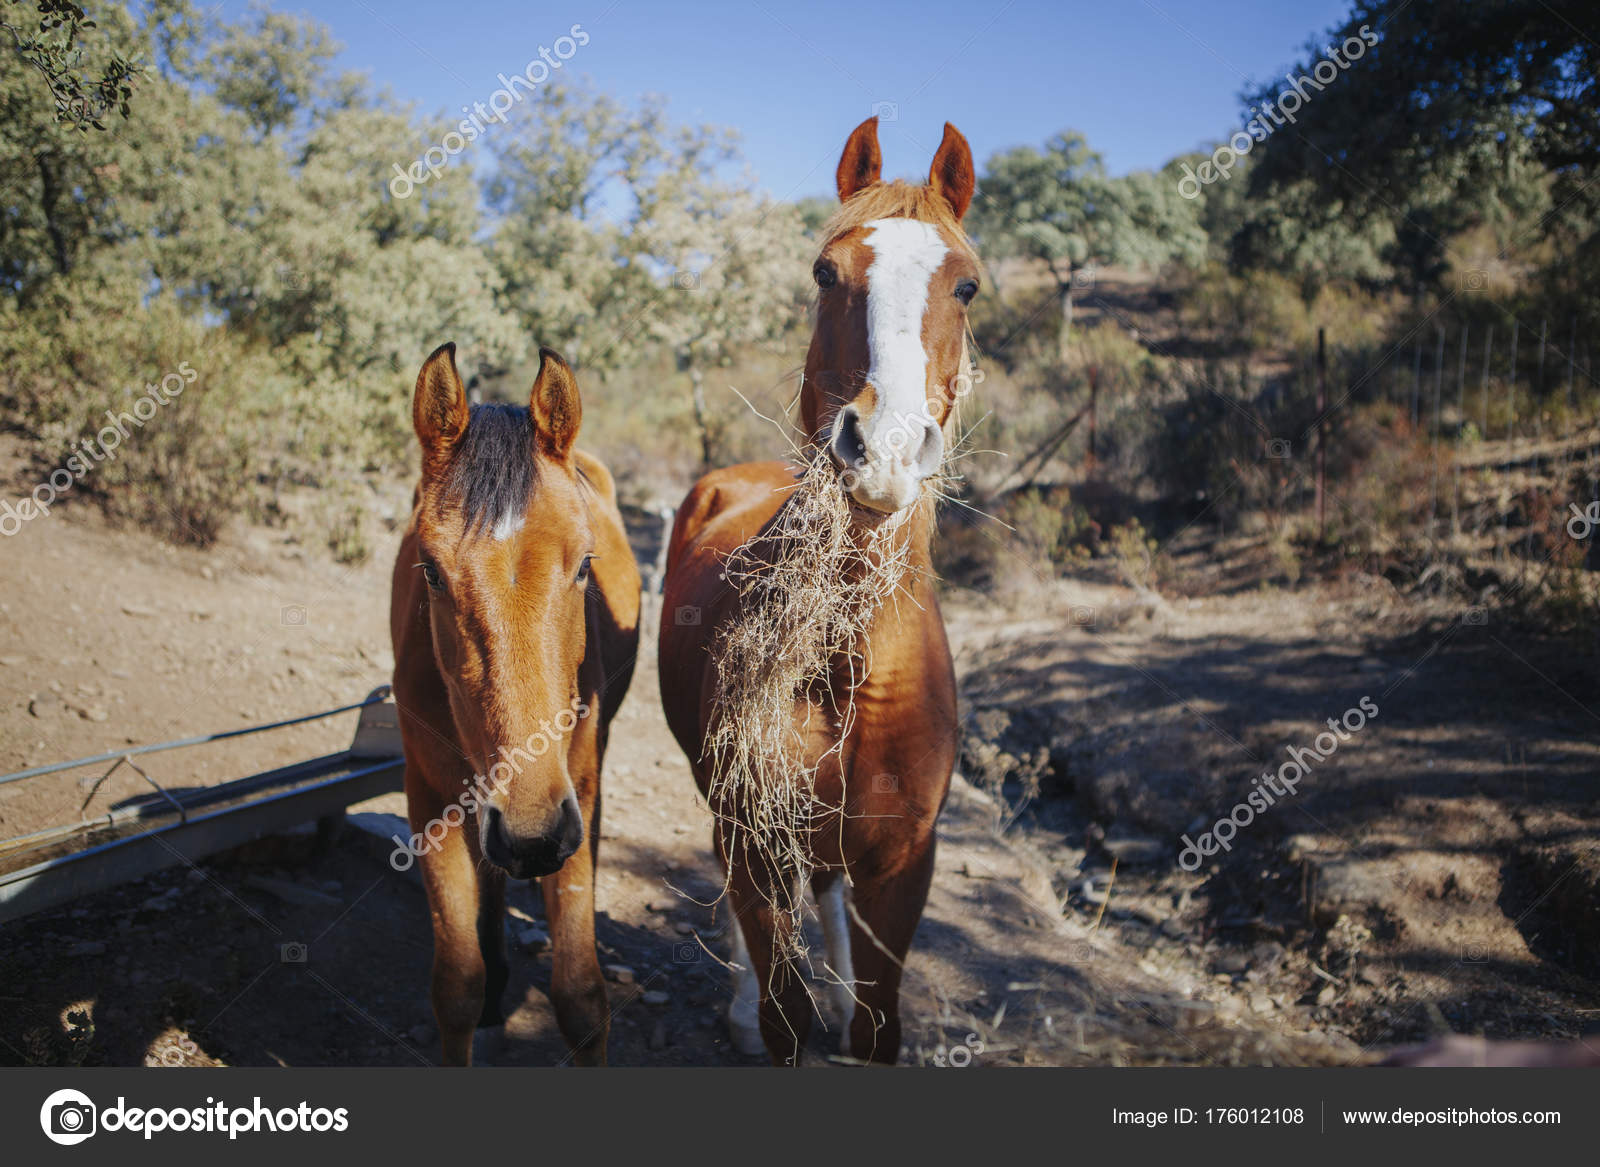 Funny Portrait Of Two Beautiful Horses Eating Grass While Looking At Camera Stock Photo C Daviles 176012108